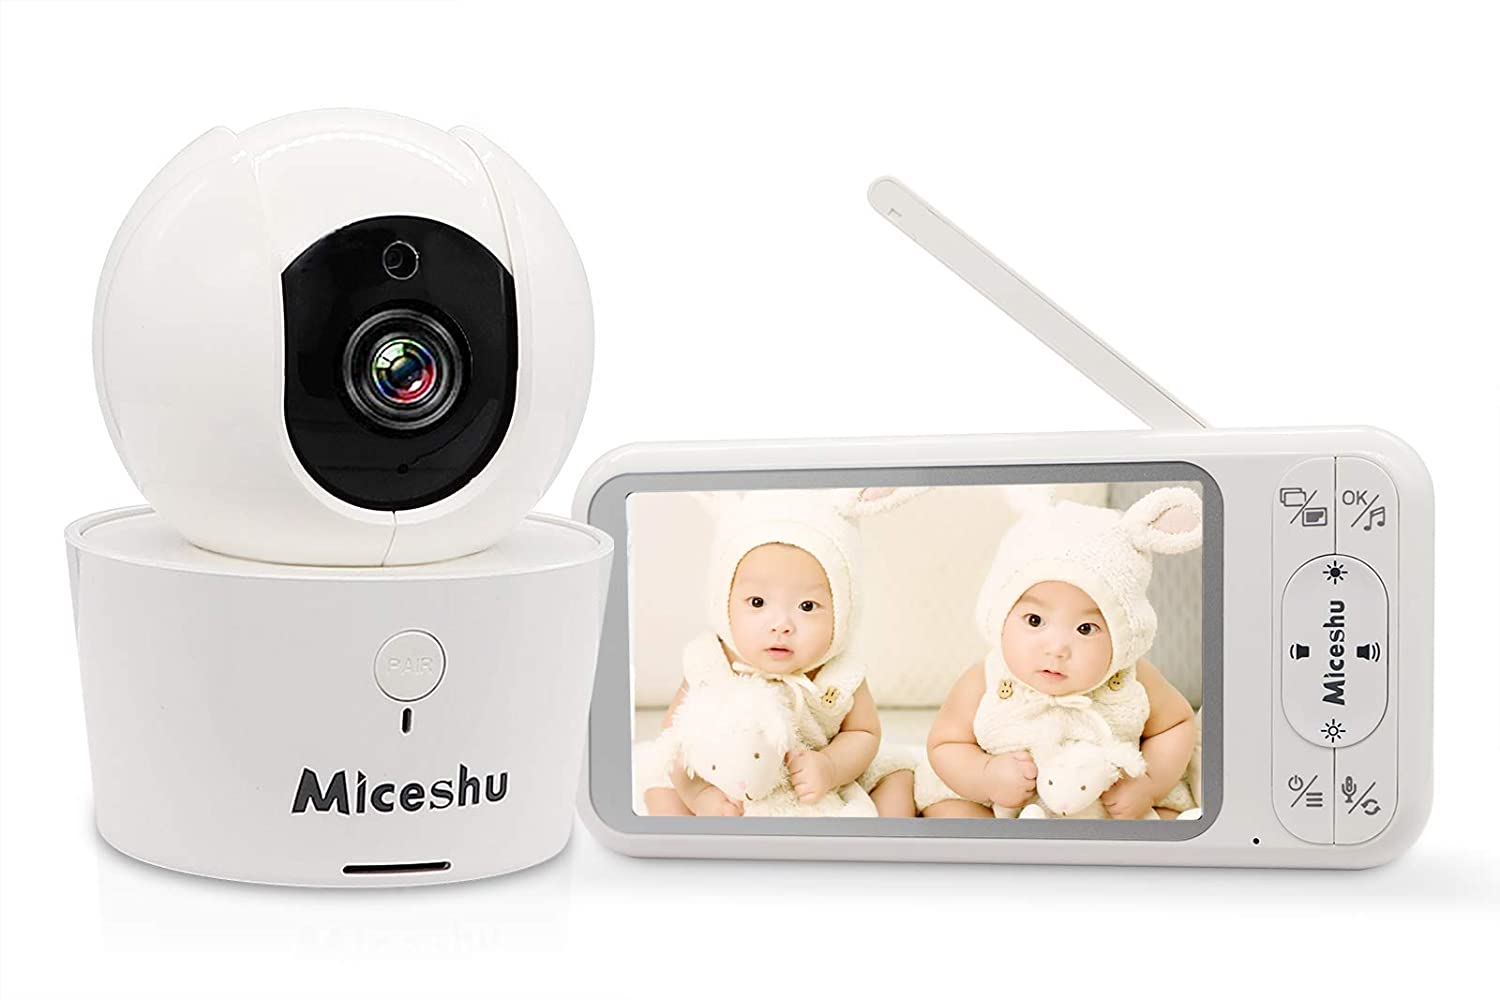 Miceshu Baby Monitor with Camera and Audio, 5